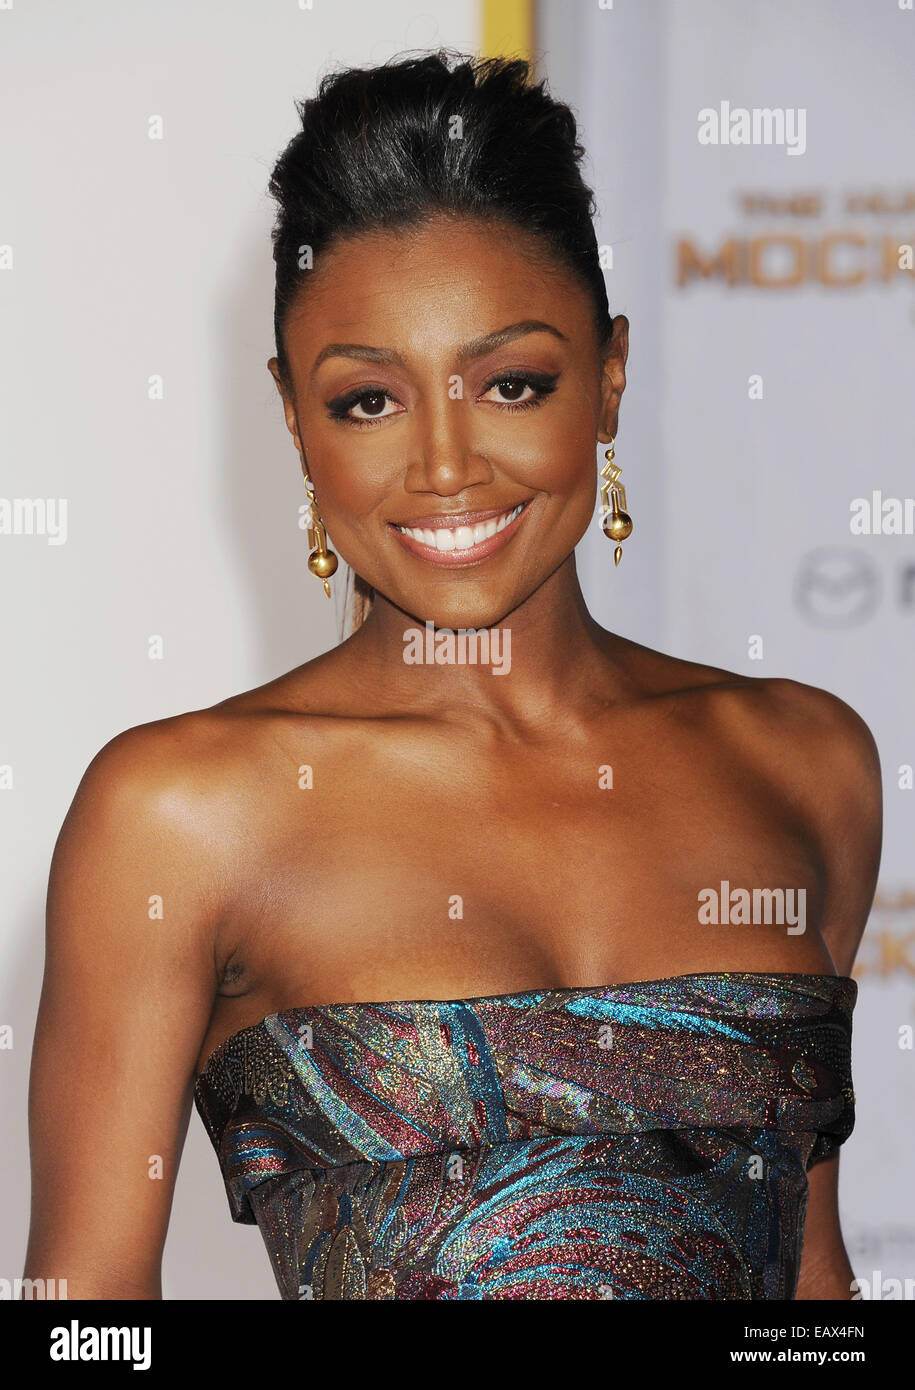 Patina Miller nudes (46 foto and video), Topless, Fappening, Twitter, bra 2006